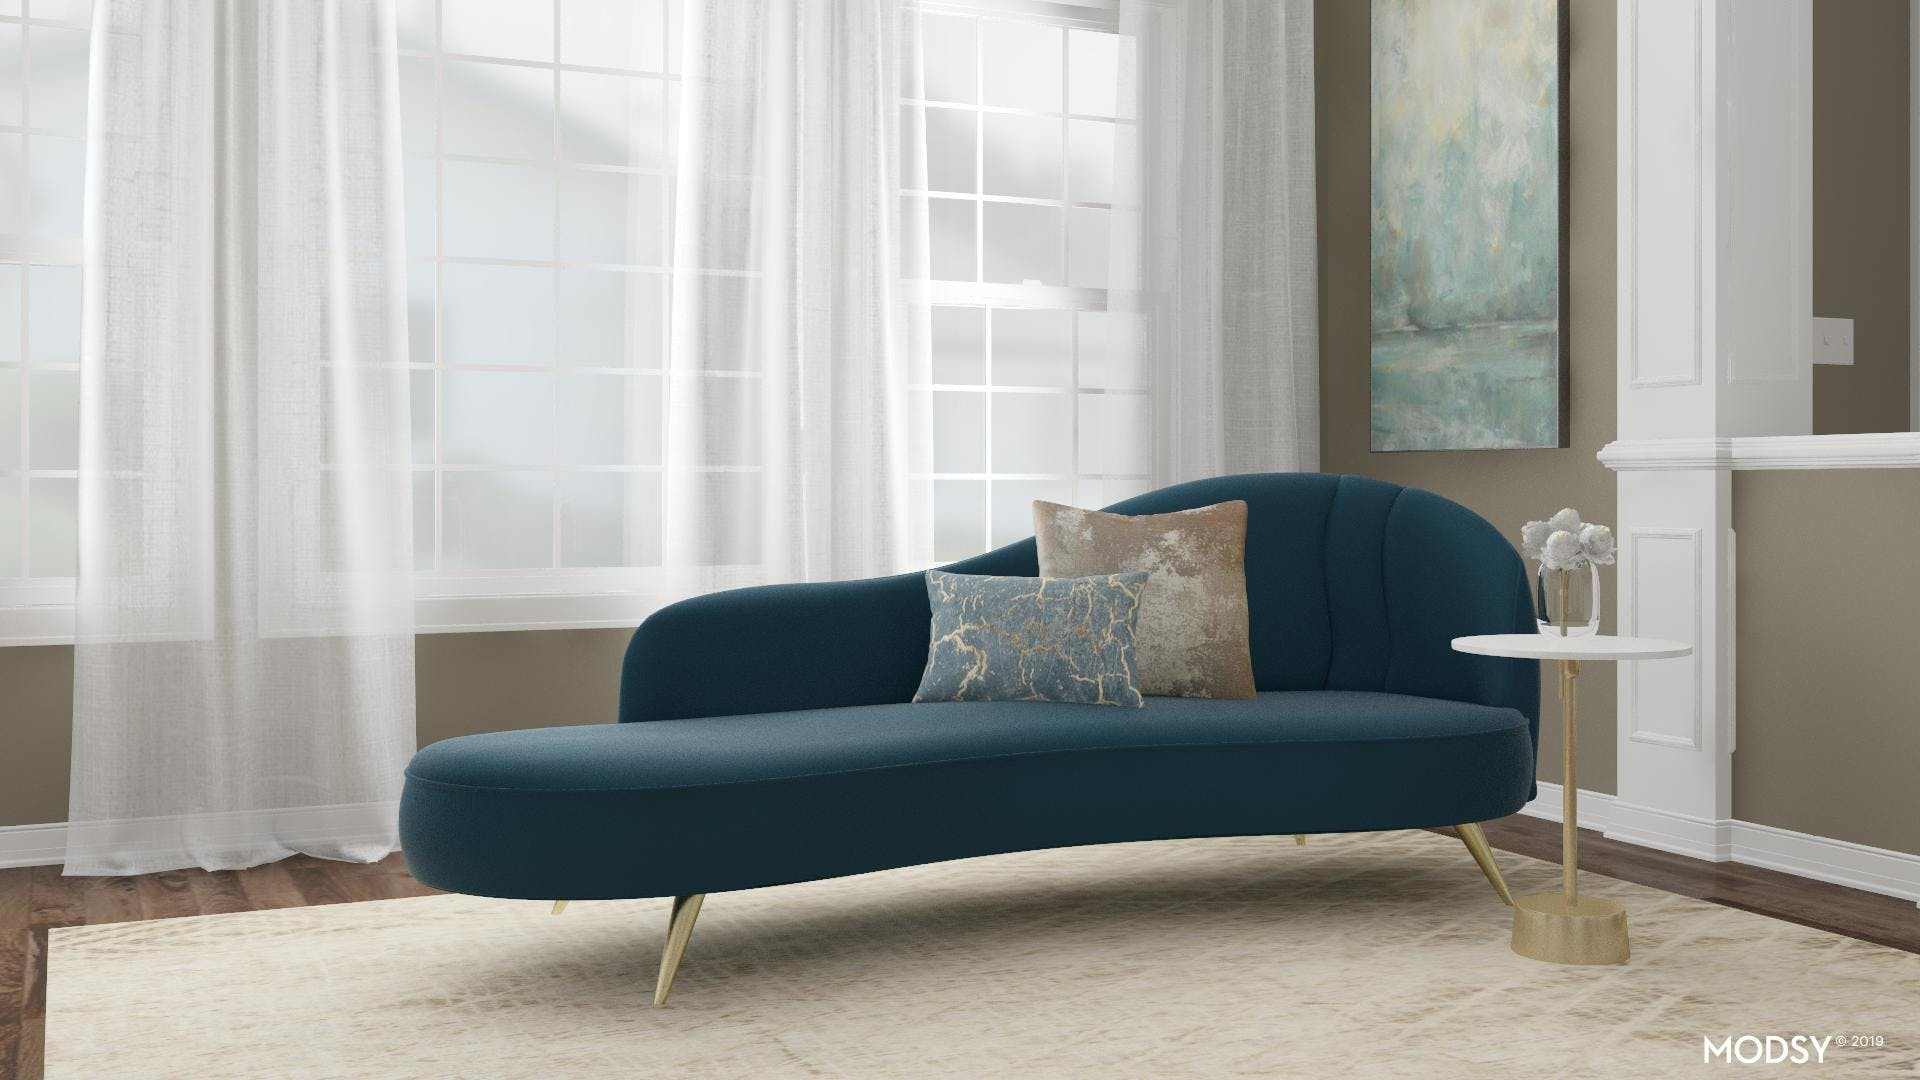 Trendy Teal Chic Living Room